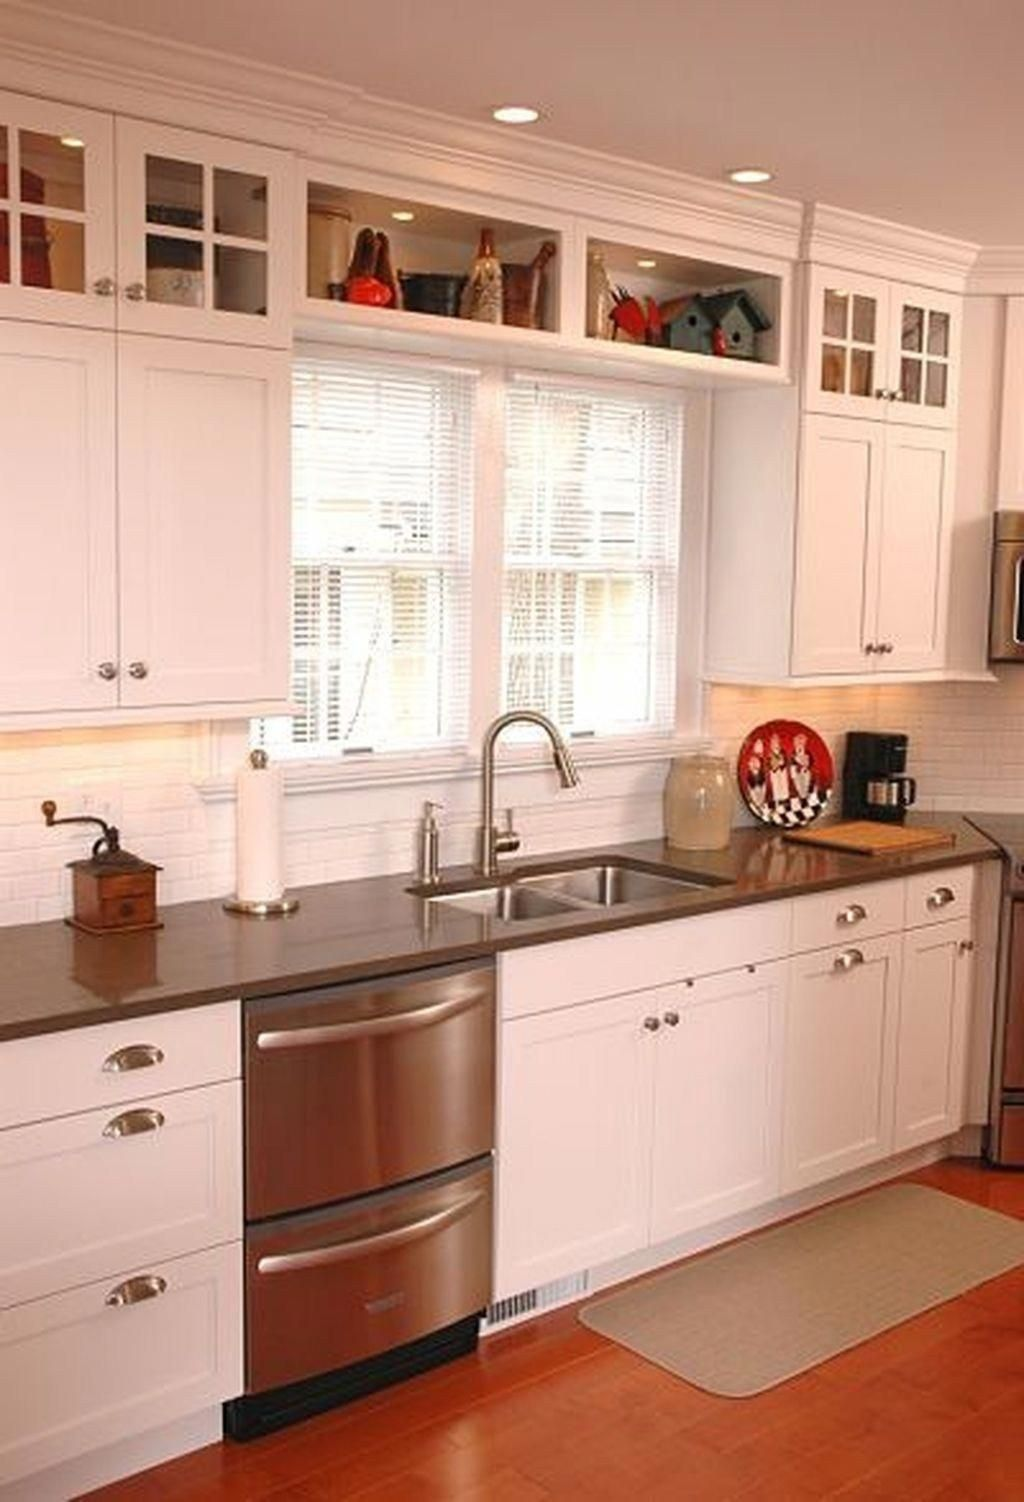 elegant small kitchen ideas remodel 43 smallkitchendesign galley style kitchen kitchen on kitchen remodel galley style id=71725